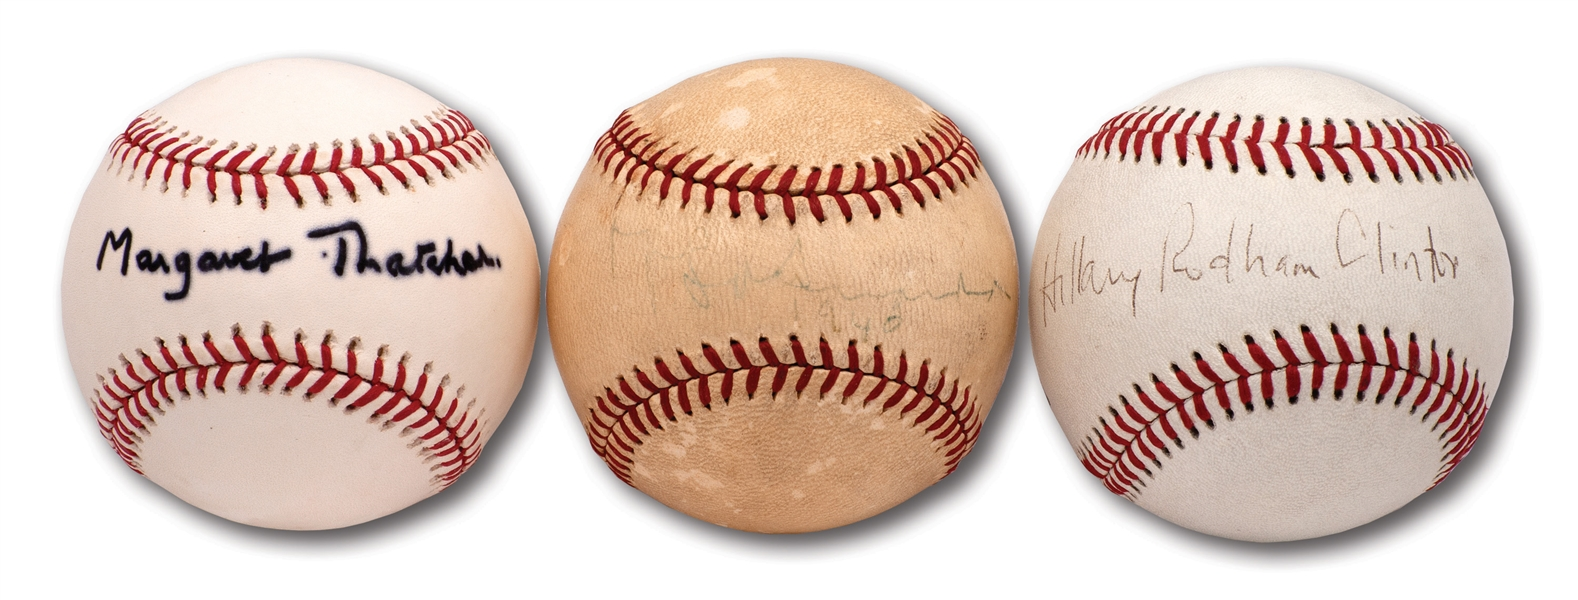 MARGARET THATCHER, FIORELLO LAGUARDIA, AND HILLARY CLINTON LOT OF (3) SINGLE SIGNED BASEBALLS